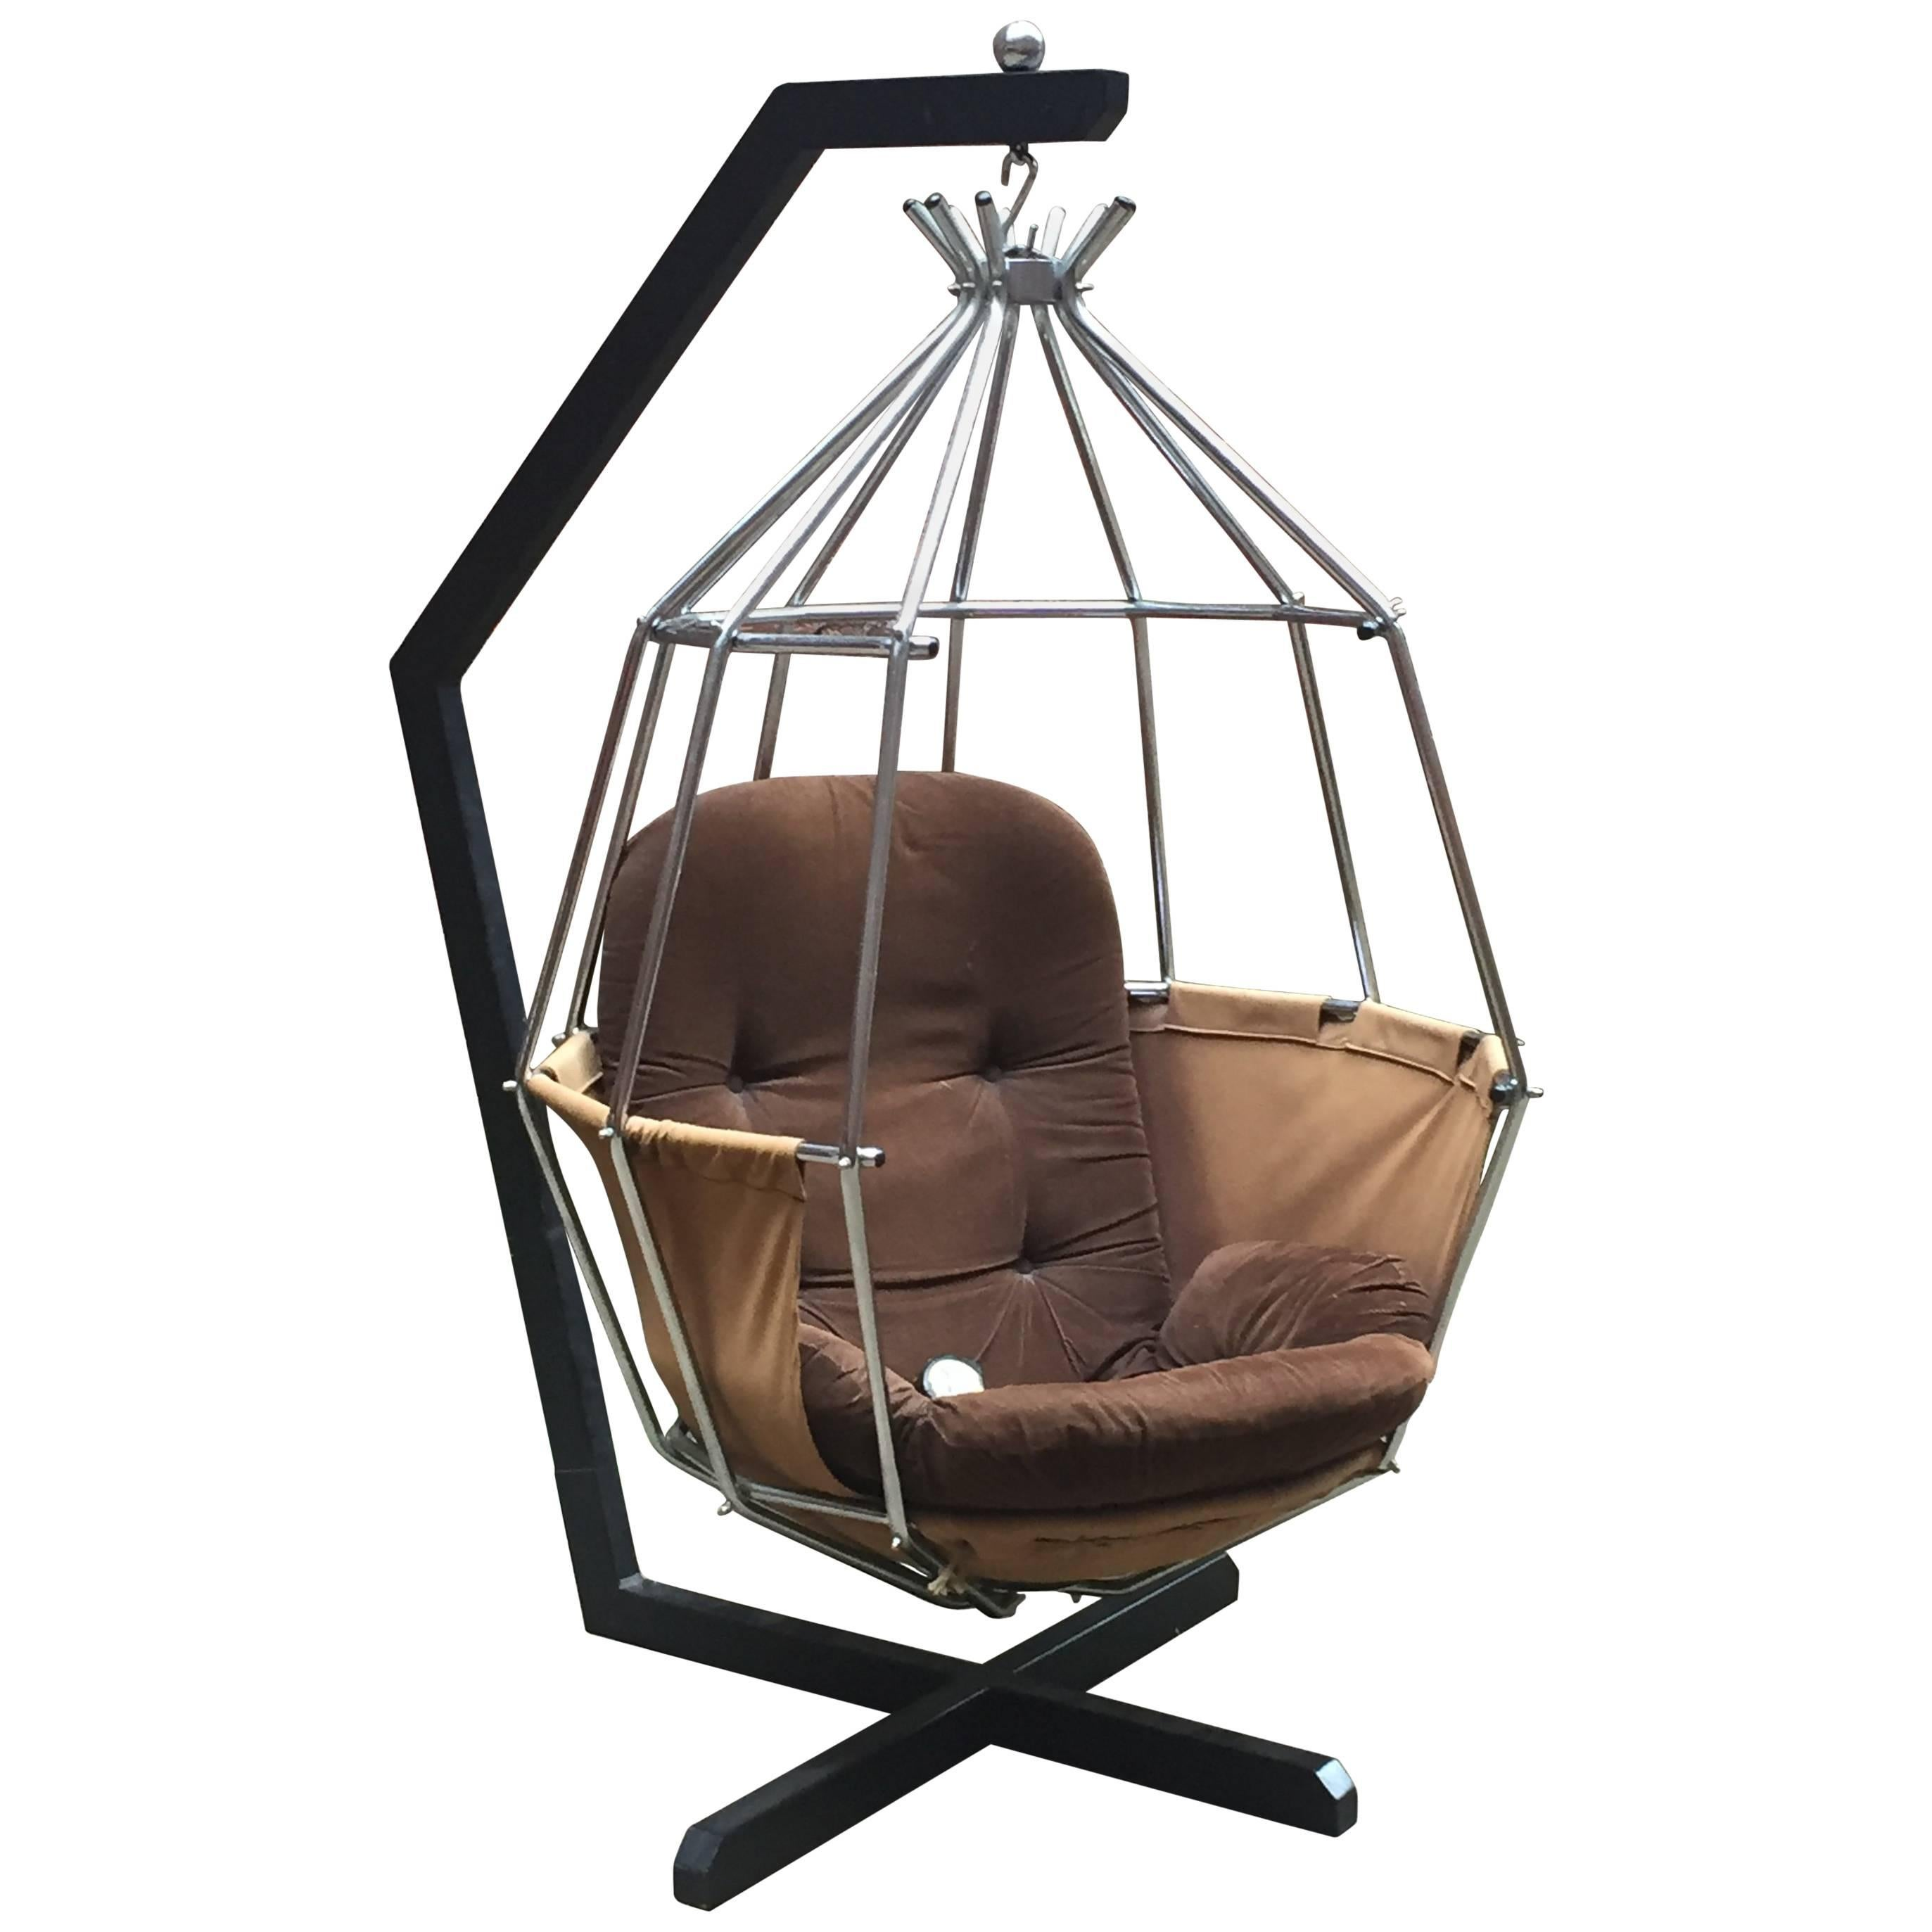 swing chair metal princess potty ib arberg parrot cage for sale at 1stdibs